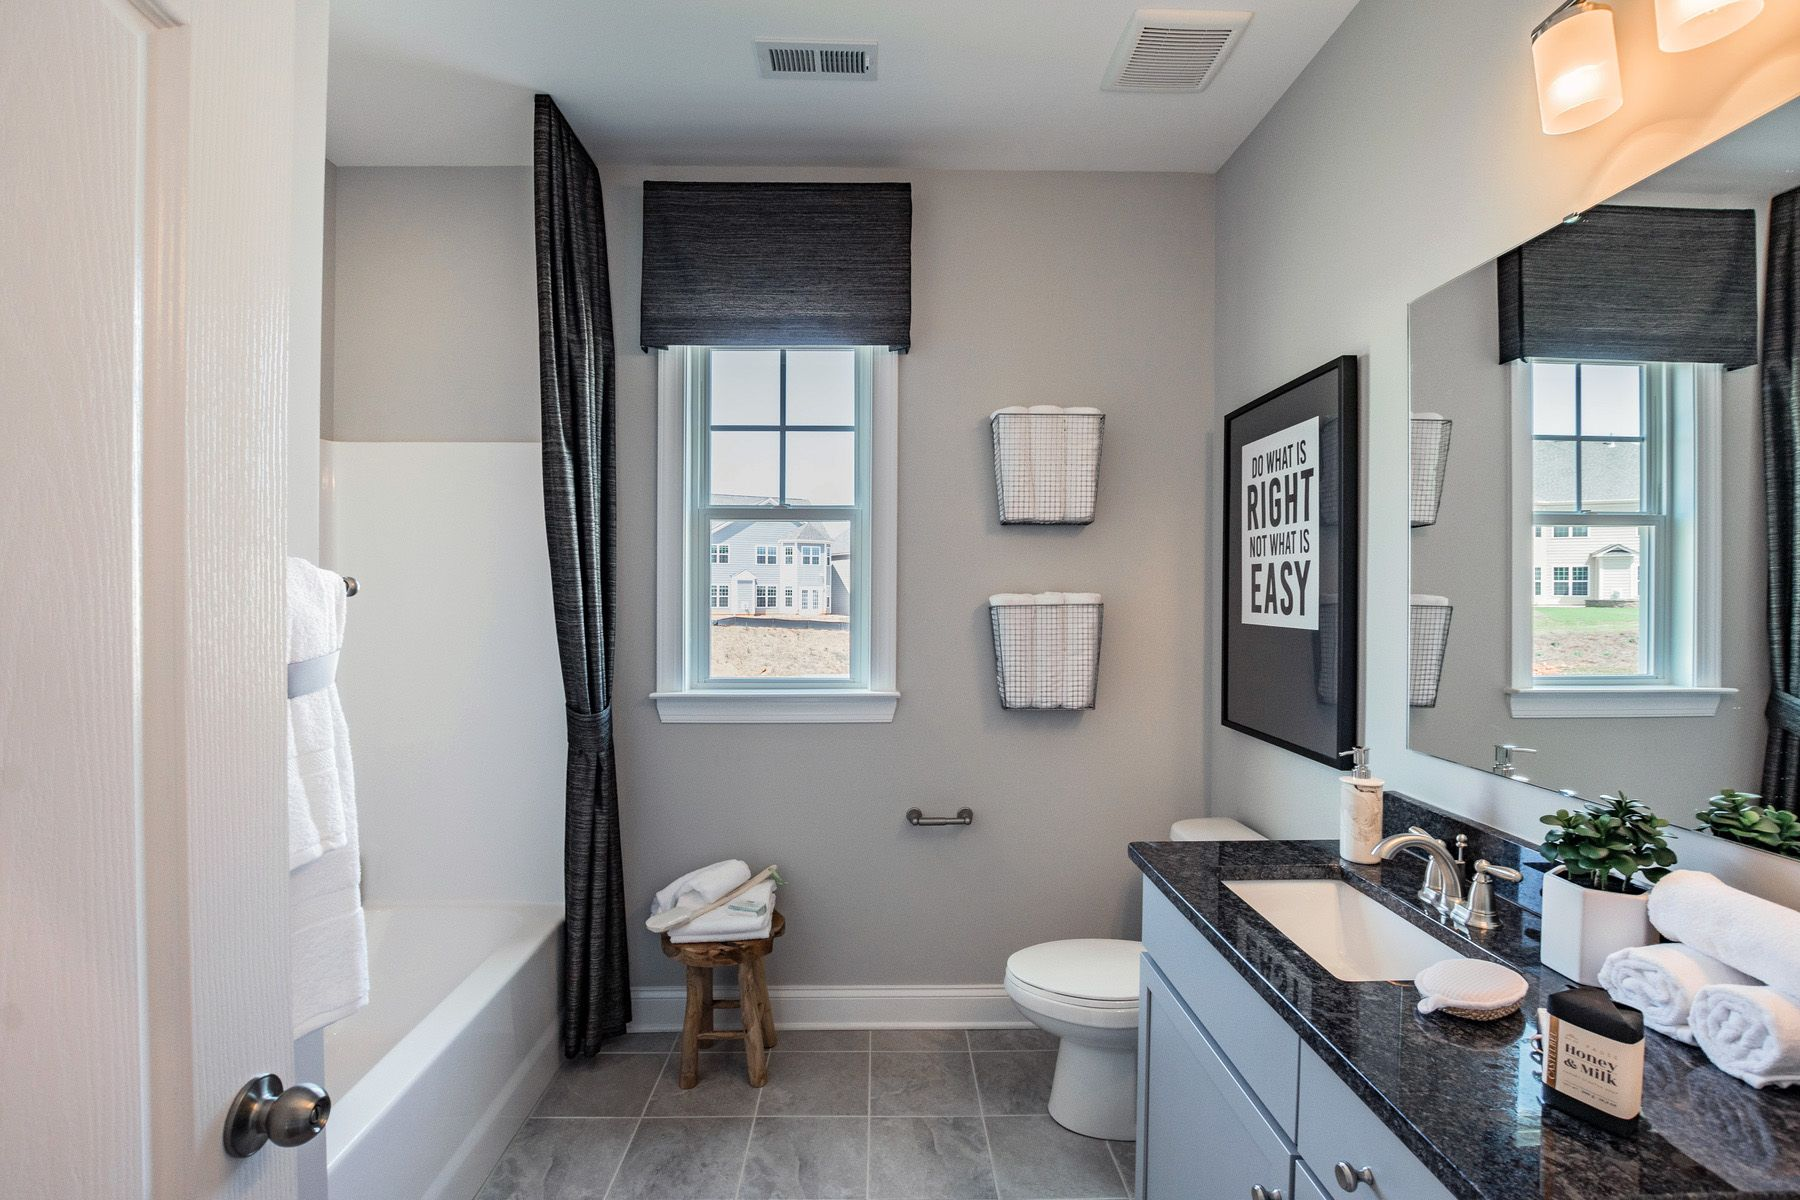 Bathroom featured in the Blythe By M/I Homes in Charlotte, NC